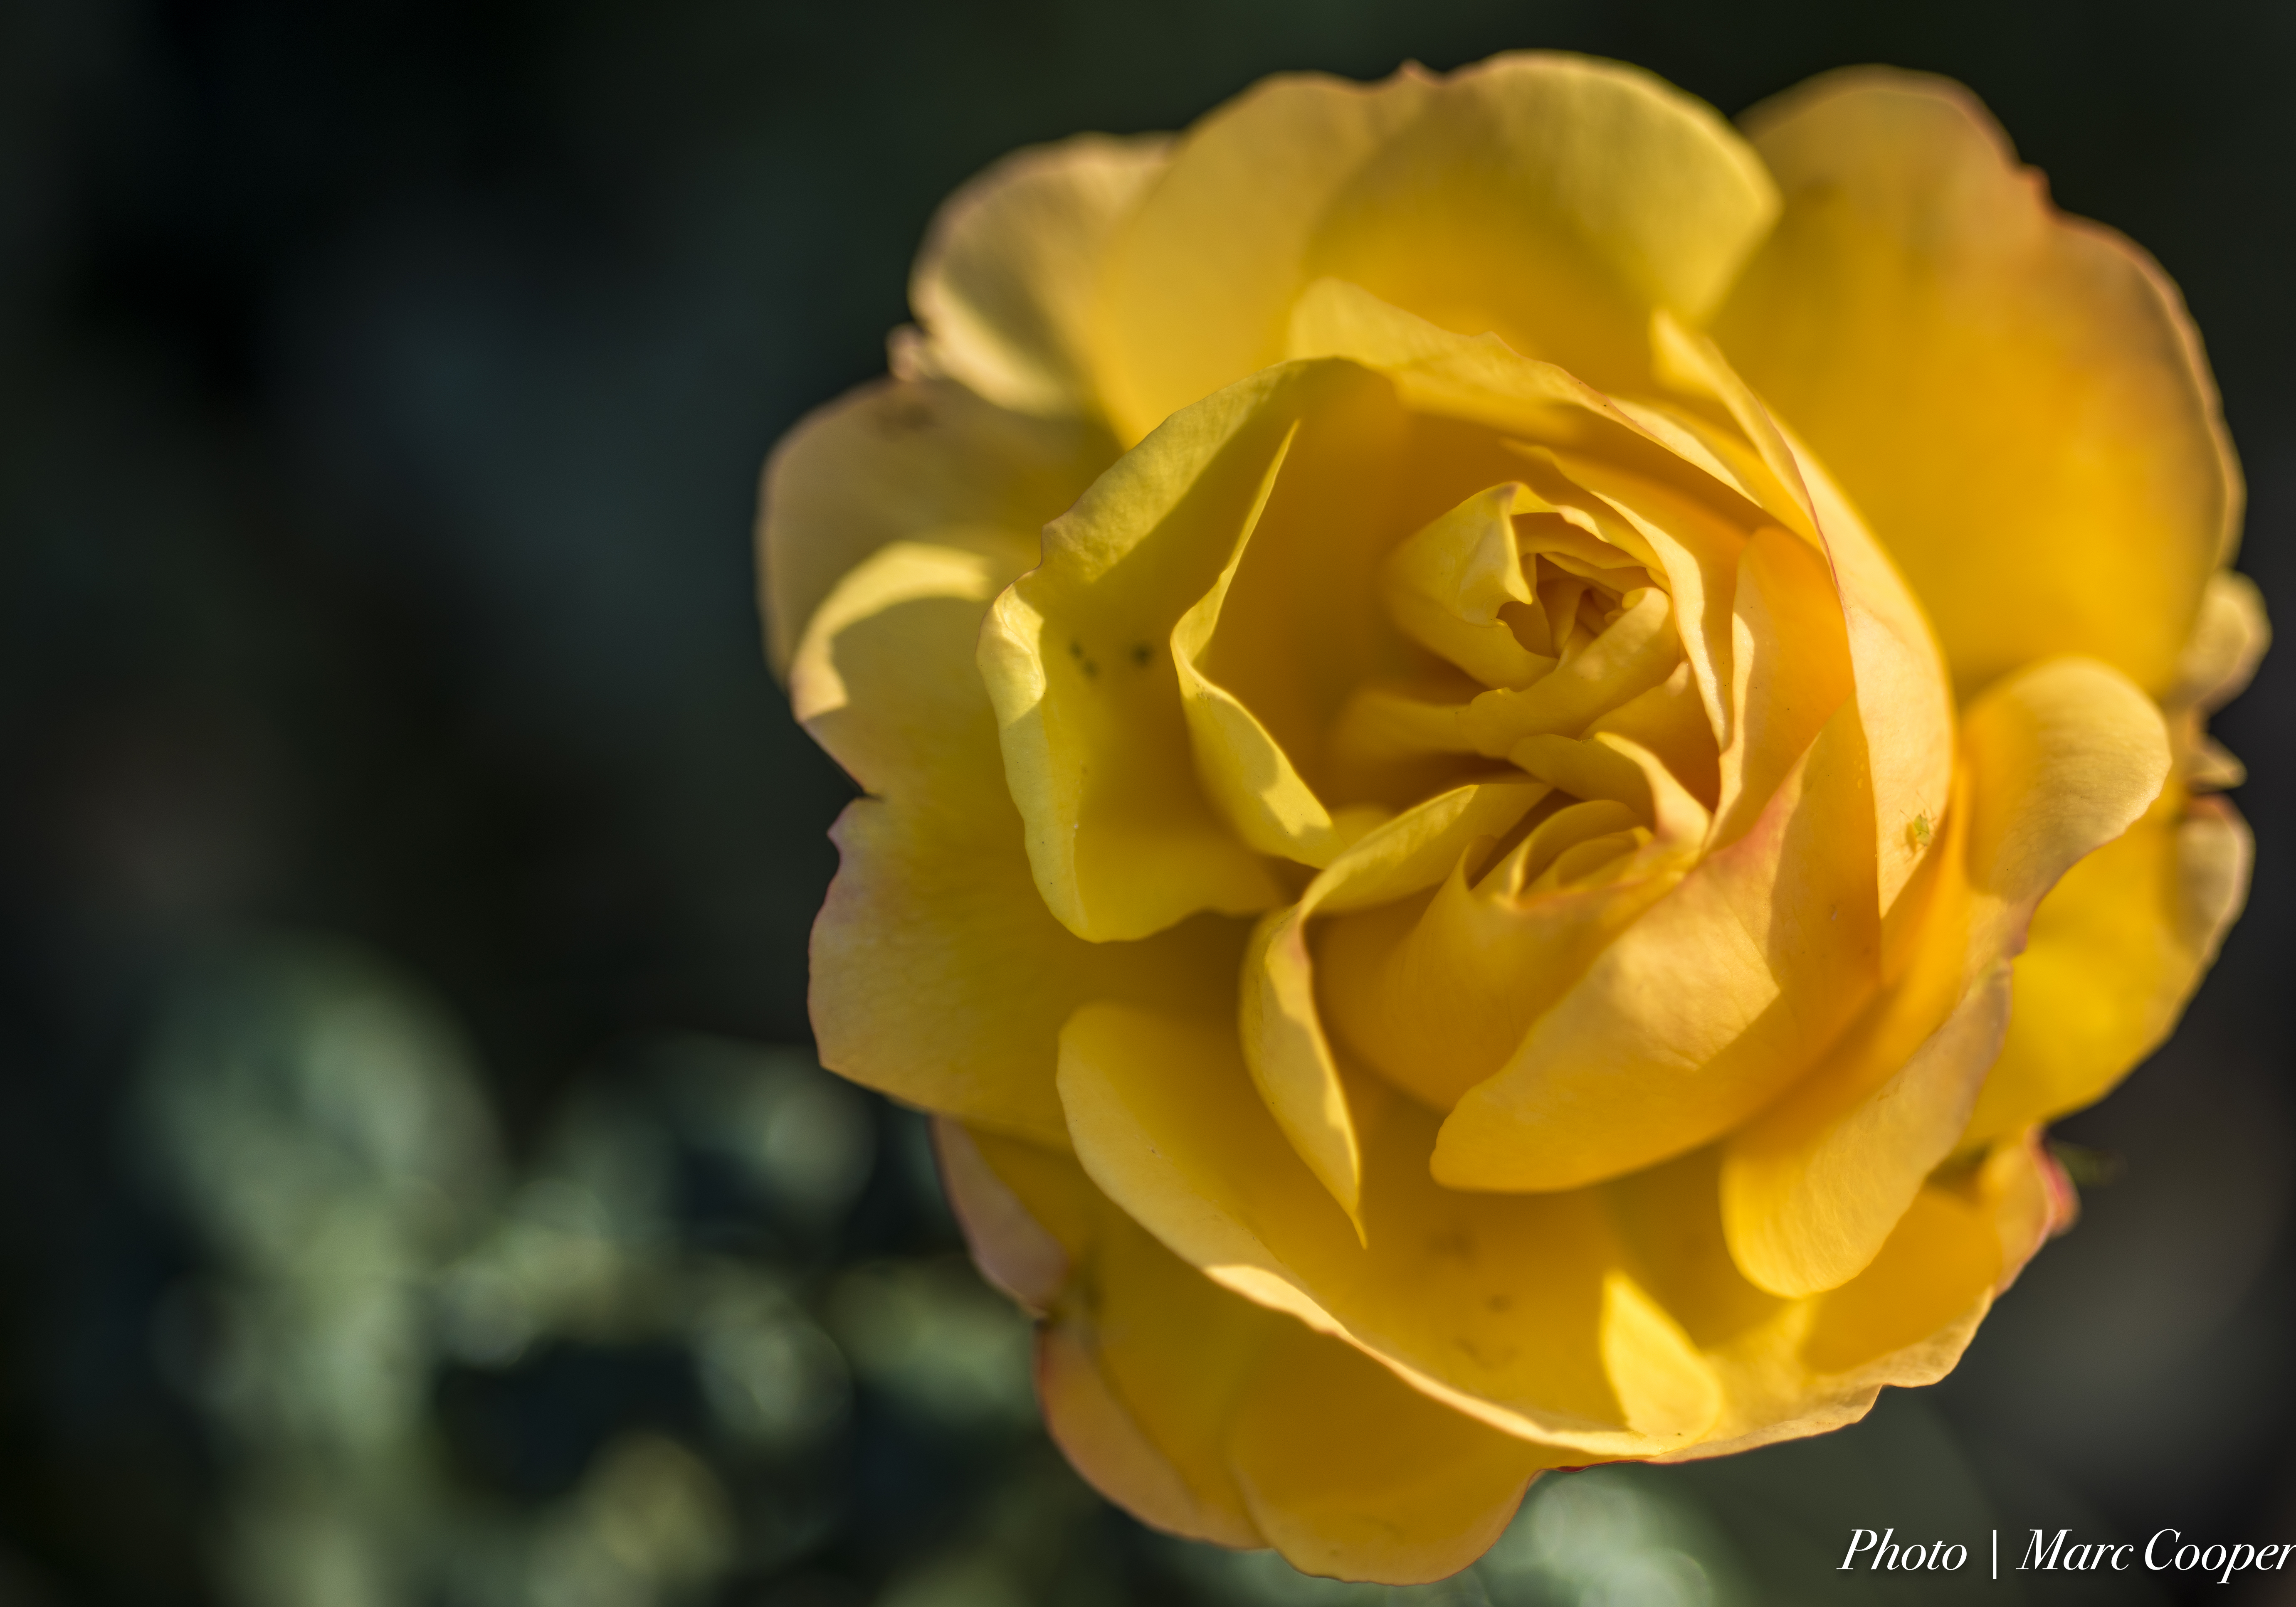 Double Hearted Rose, Calabasas, D810, Depth of field, Flower, HQ Photo